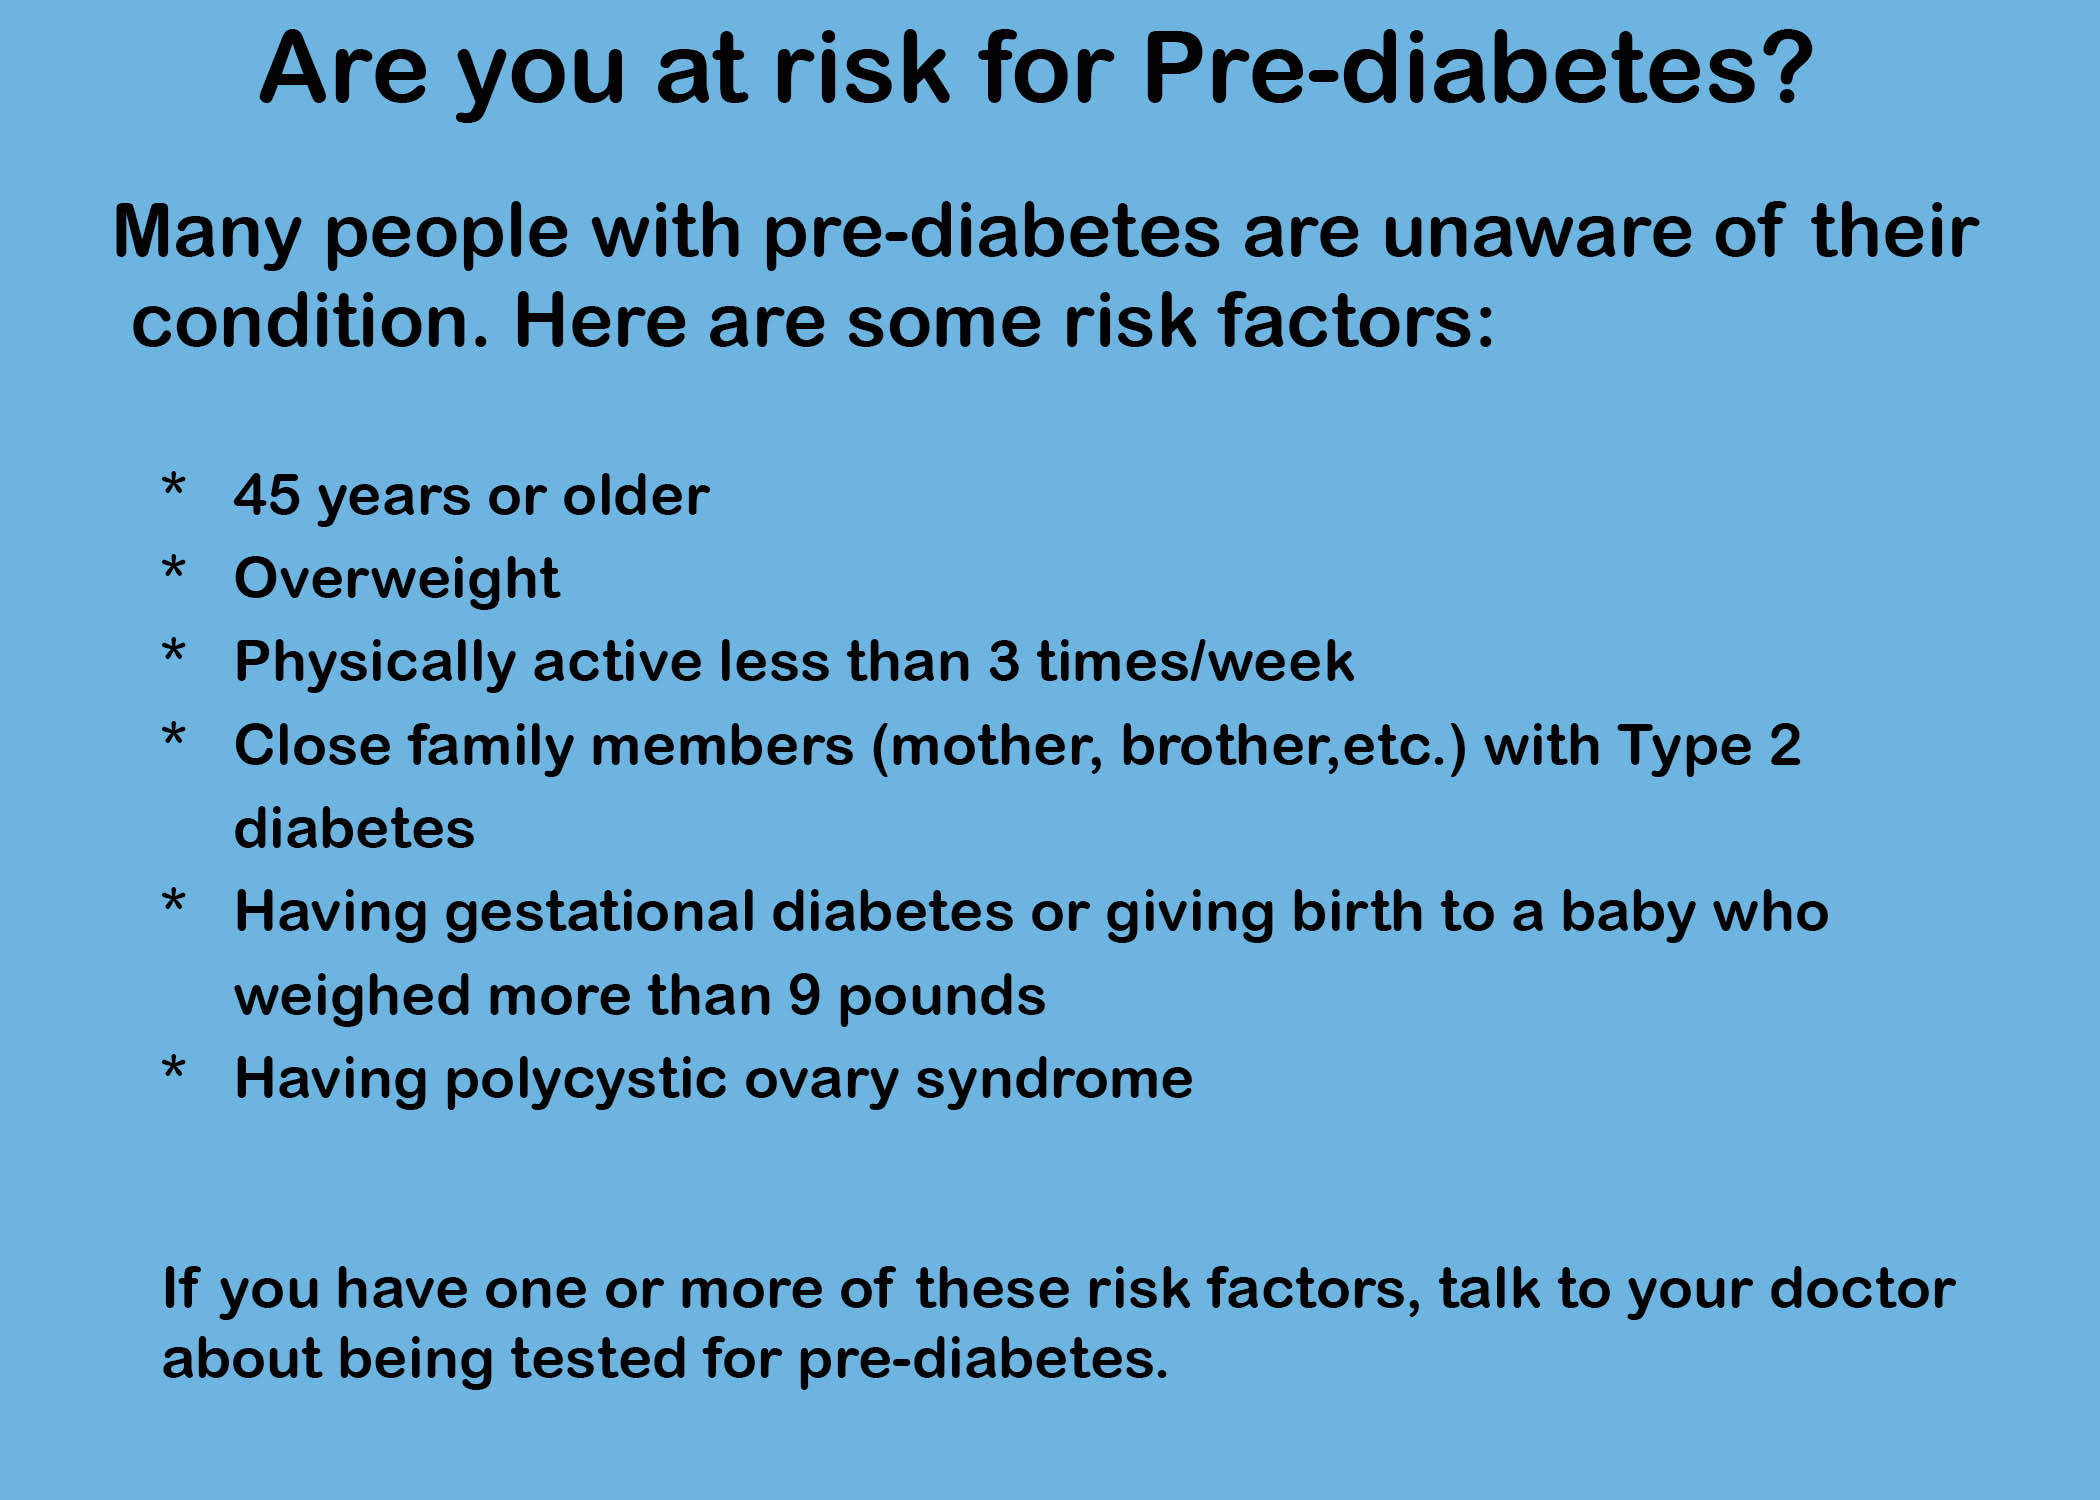 pre-diabetes risk